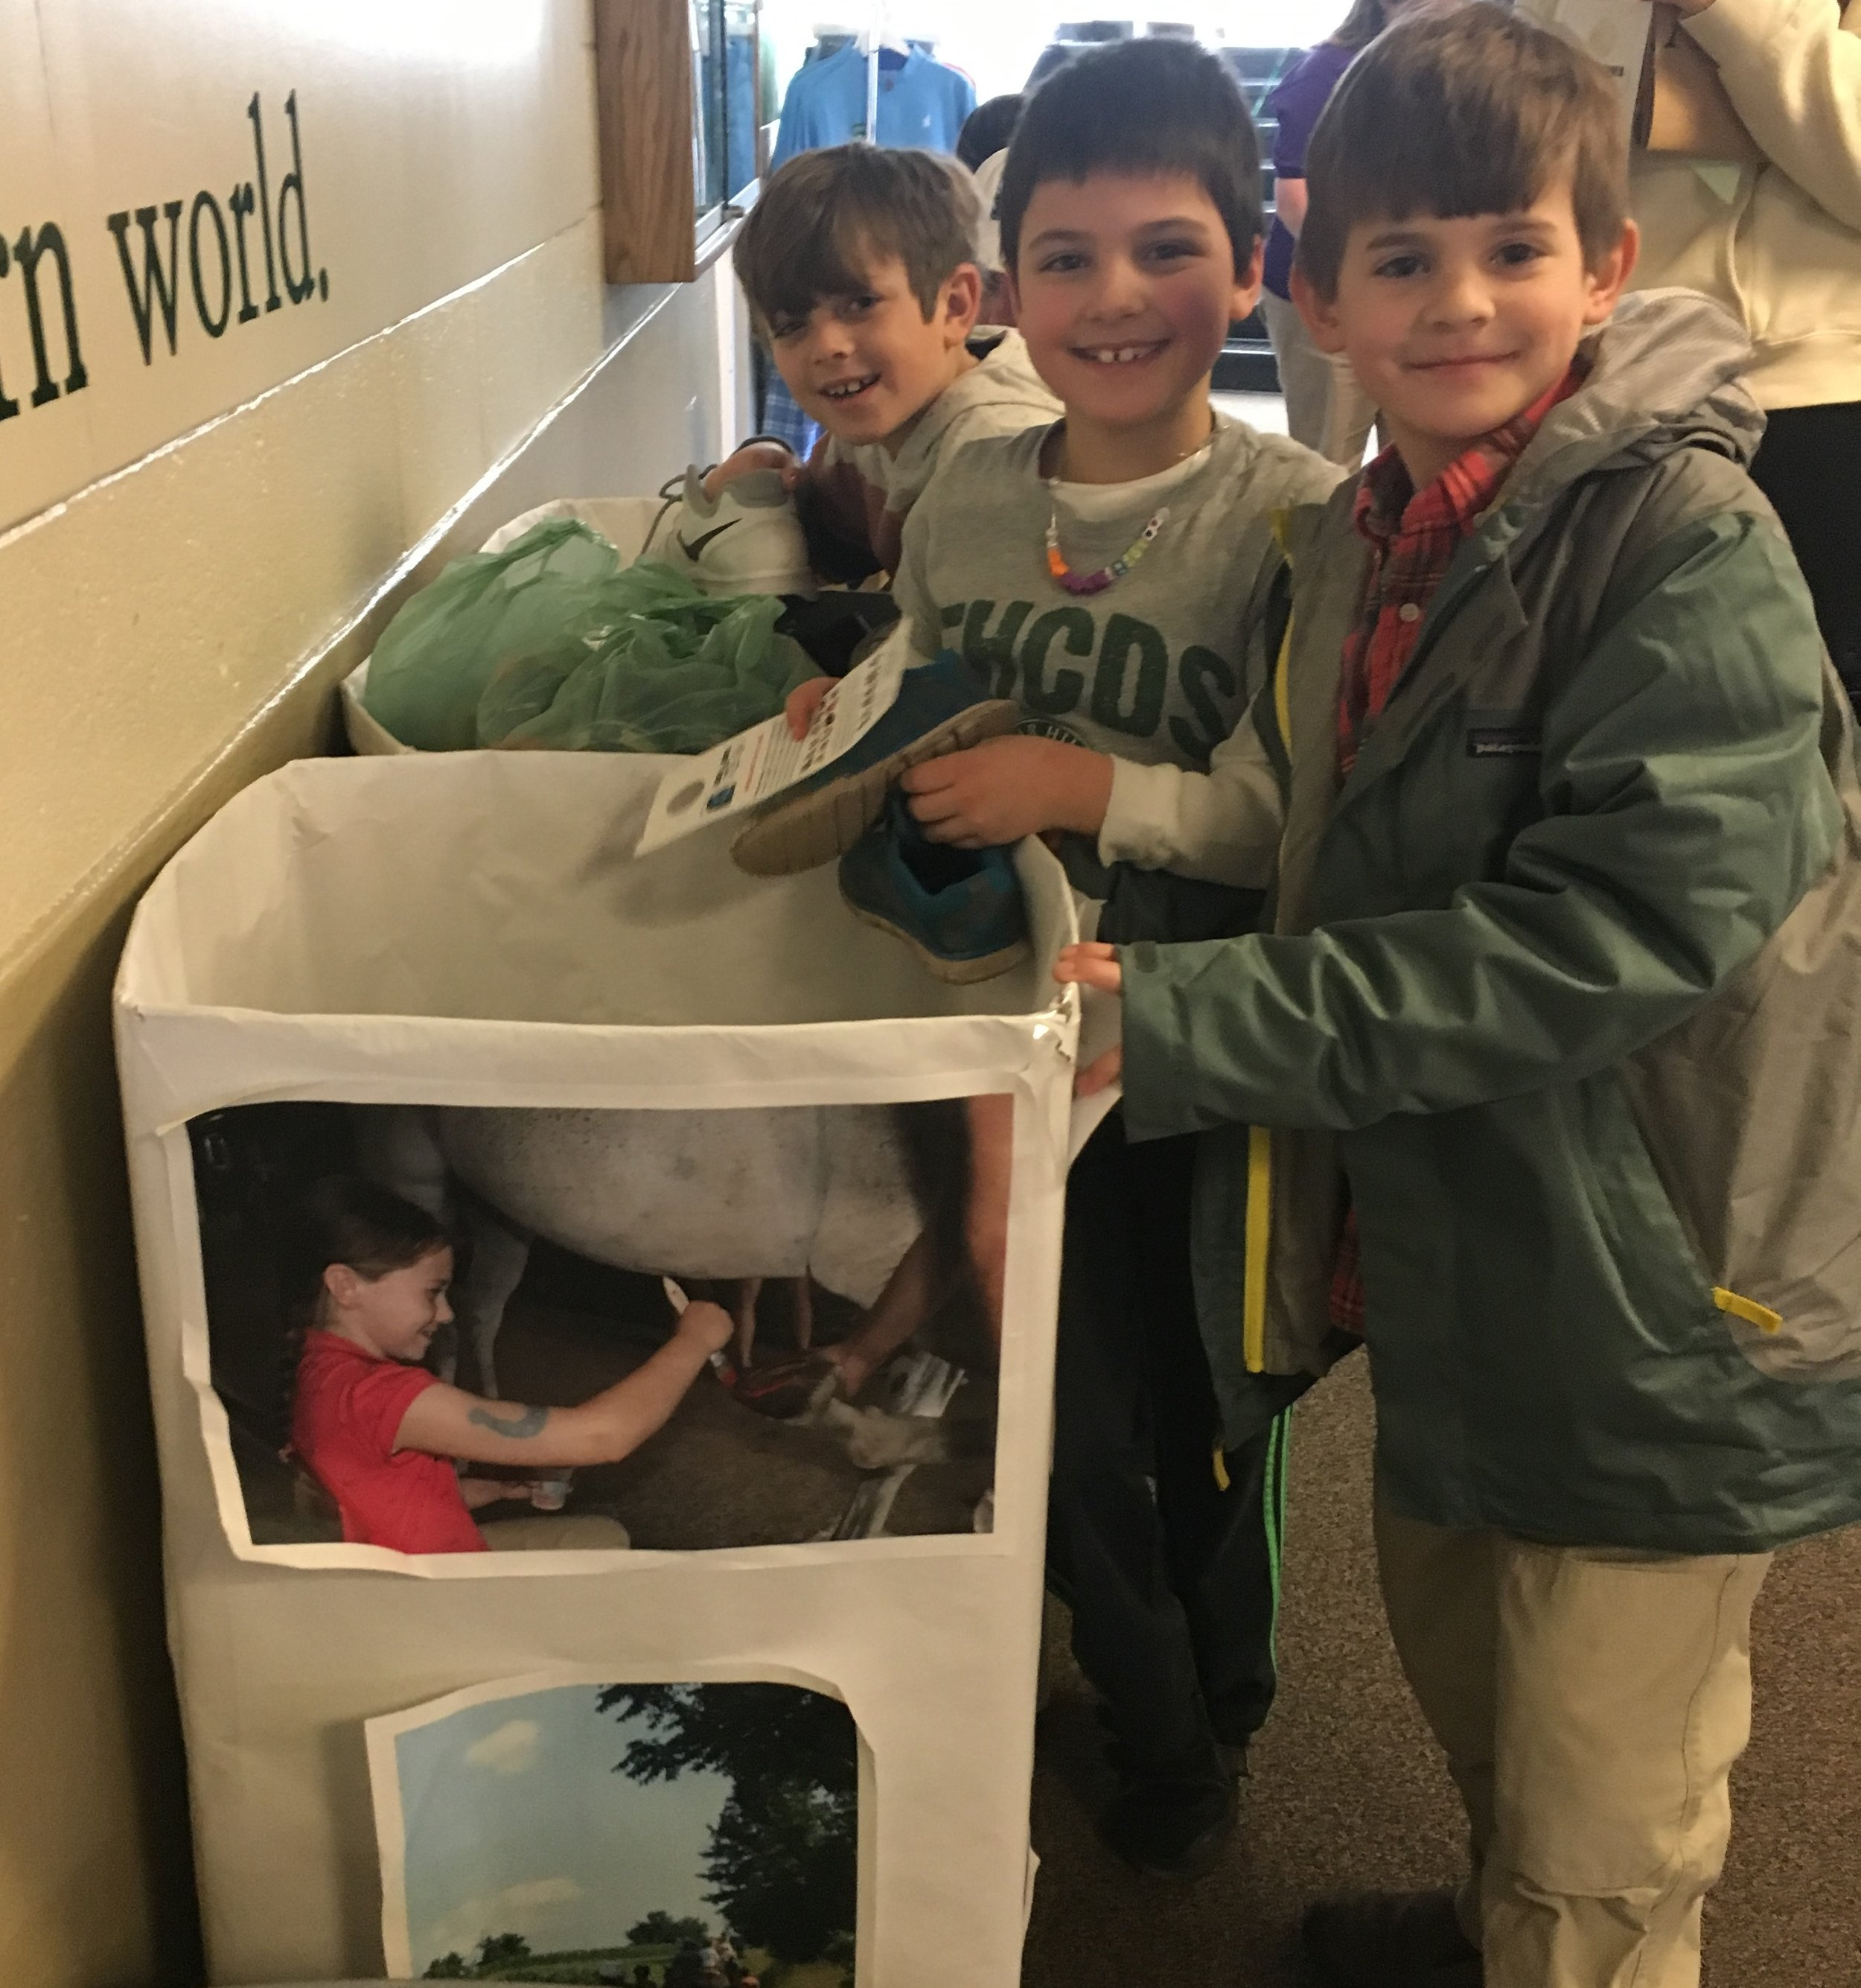 These kids and several more from Far Hills Country Day School helped sort and box 169 pounds during their Community Service Day on February 4th. Thank you!!!